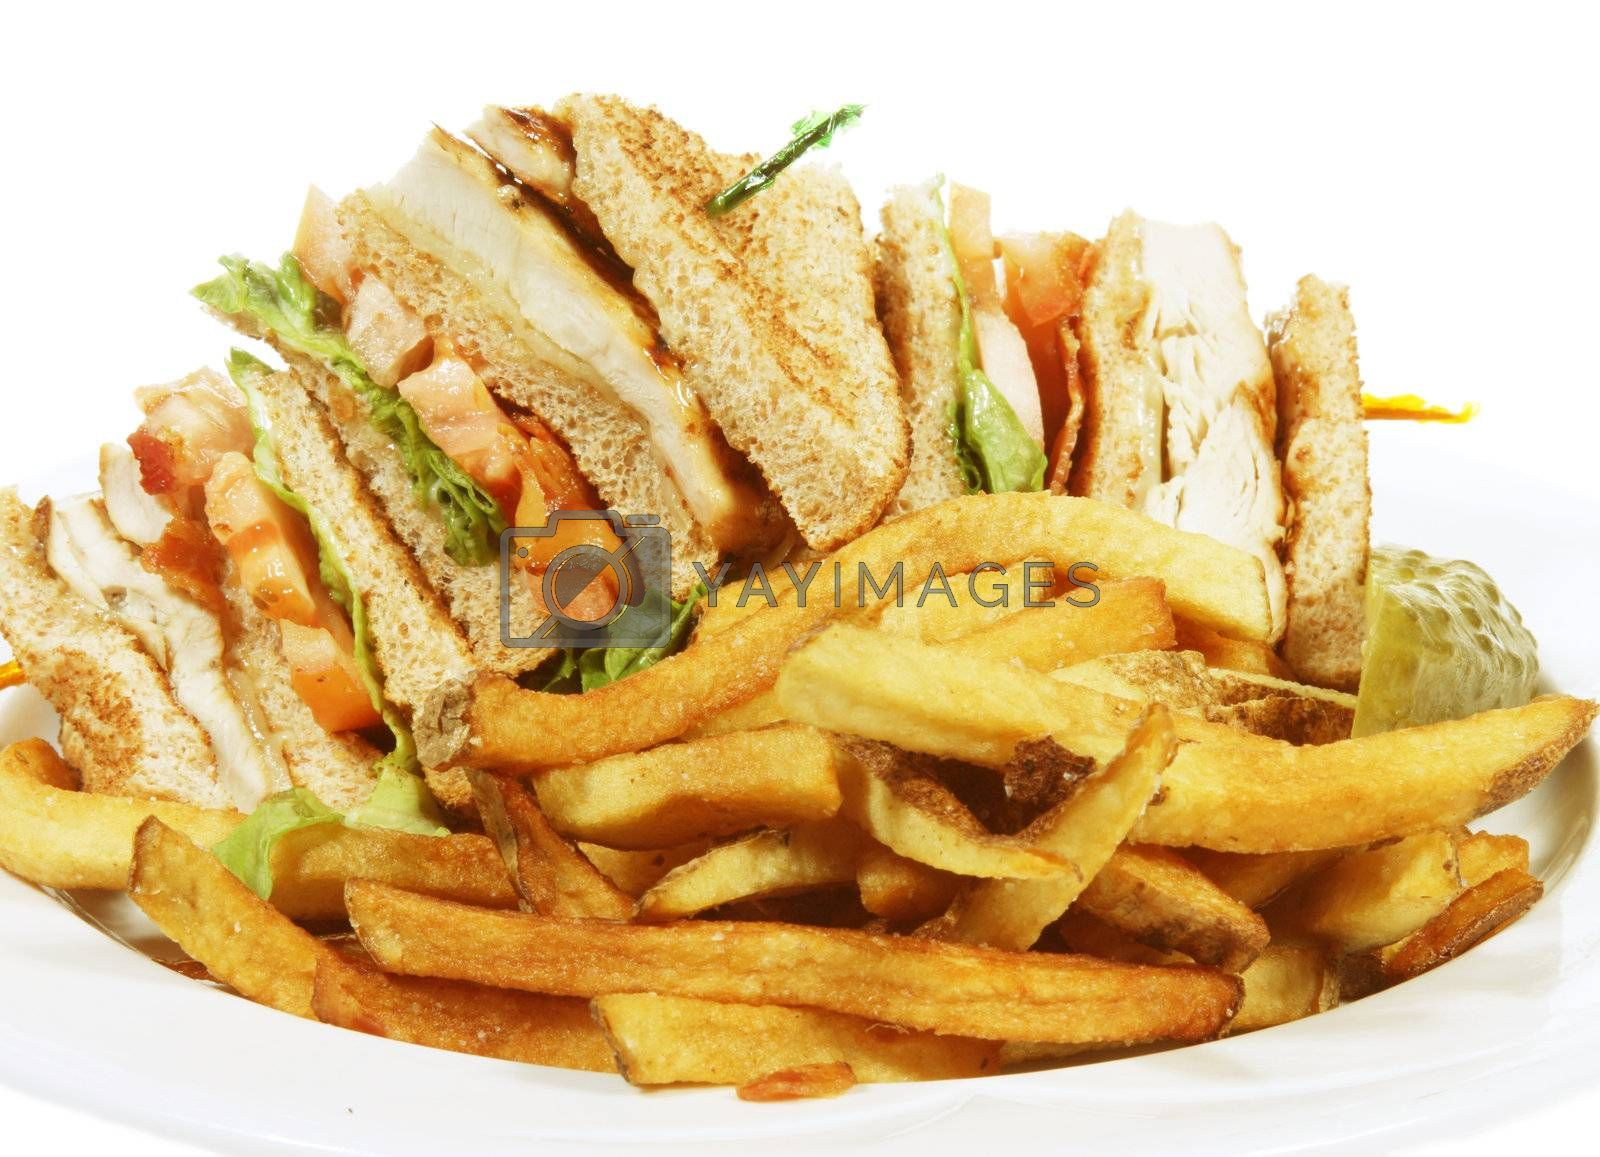 club sandwich by smitea